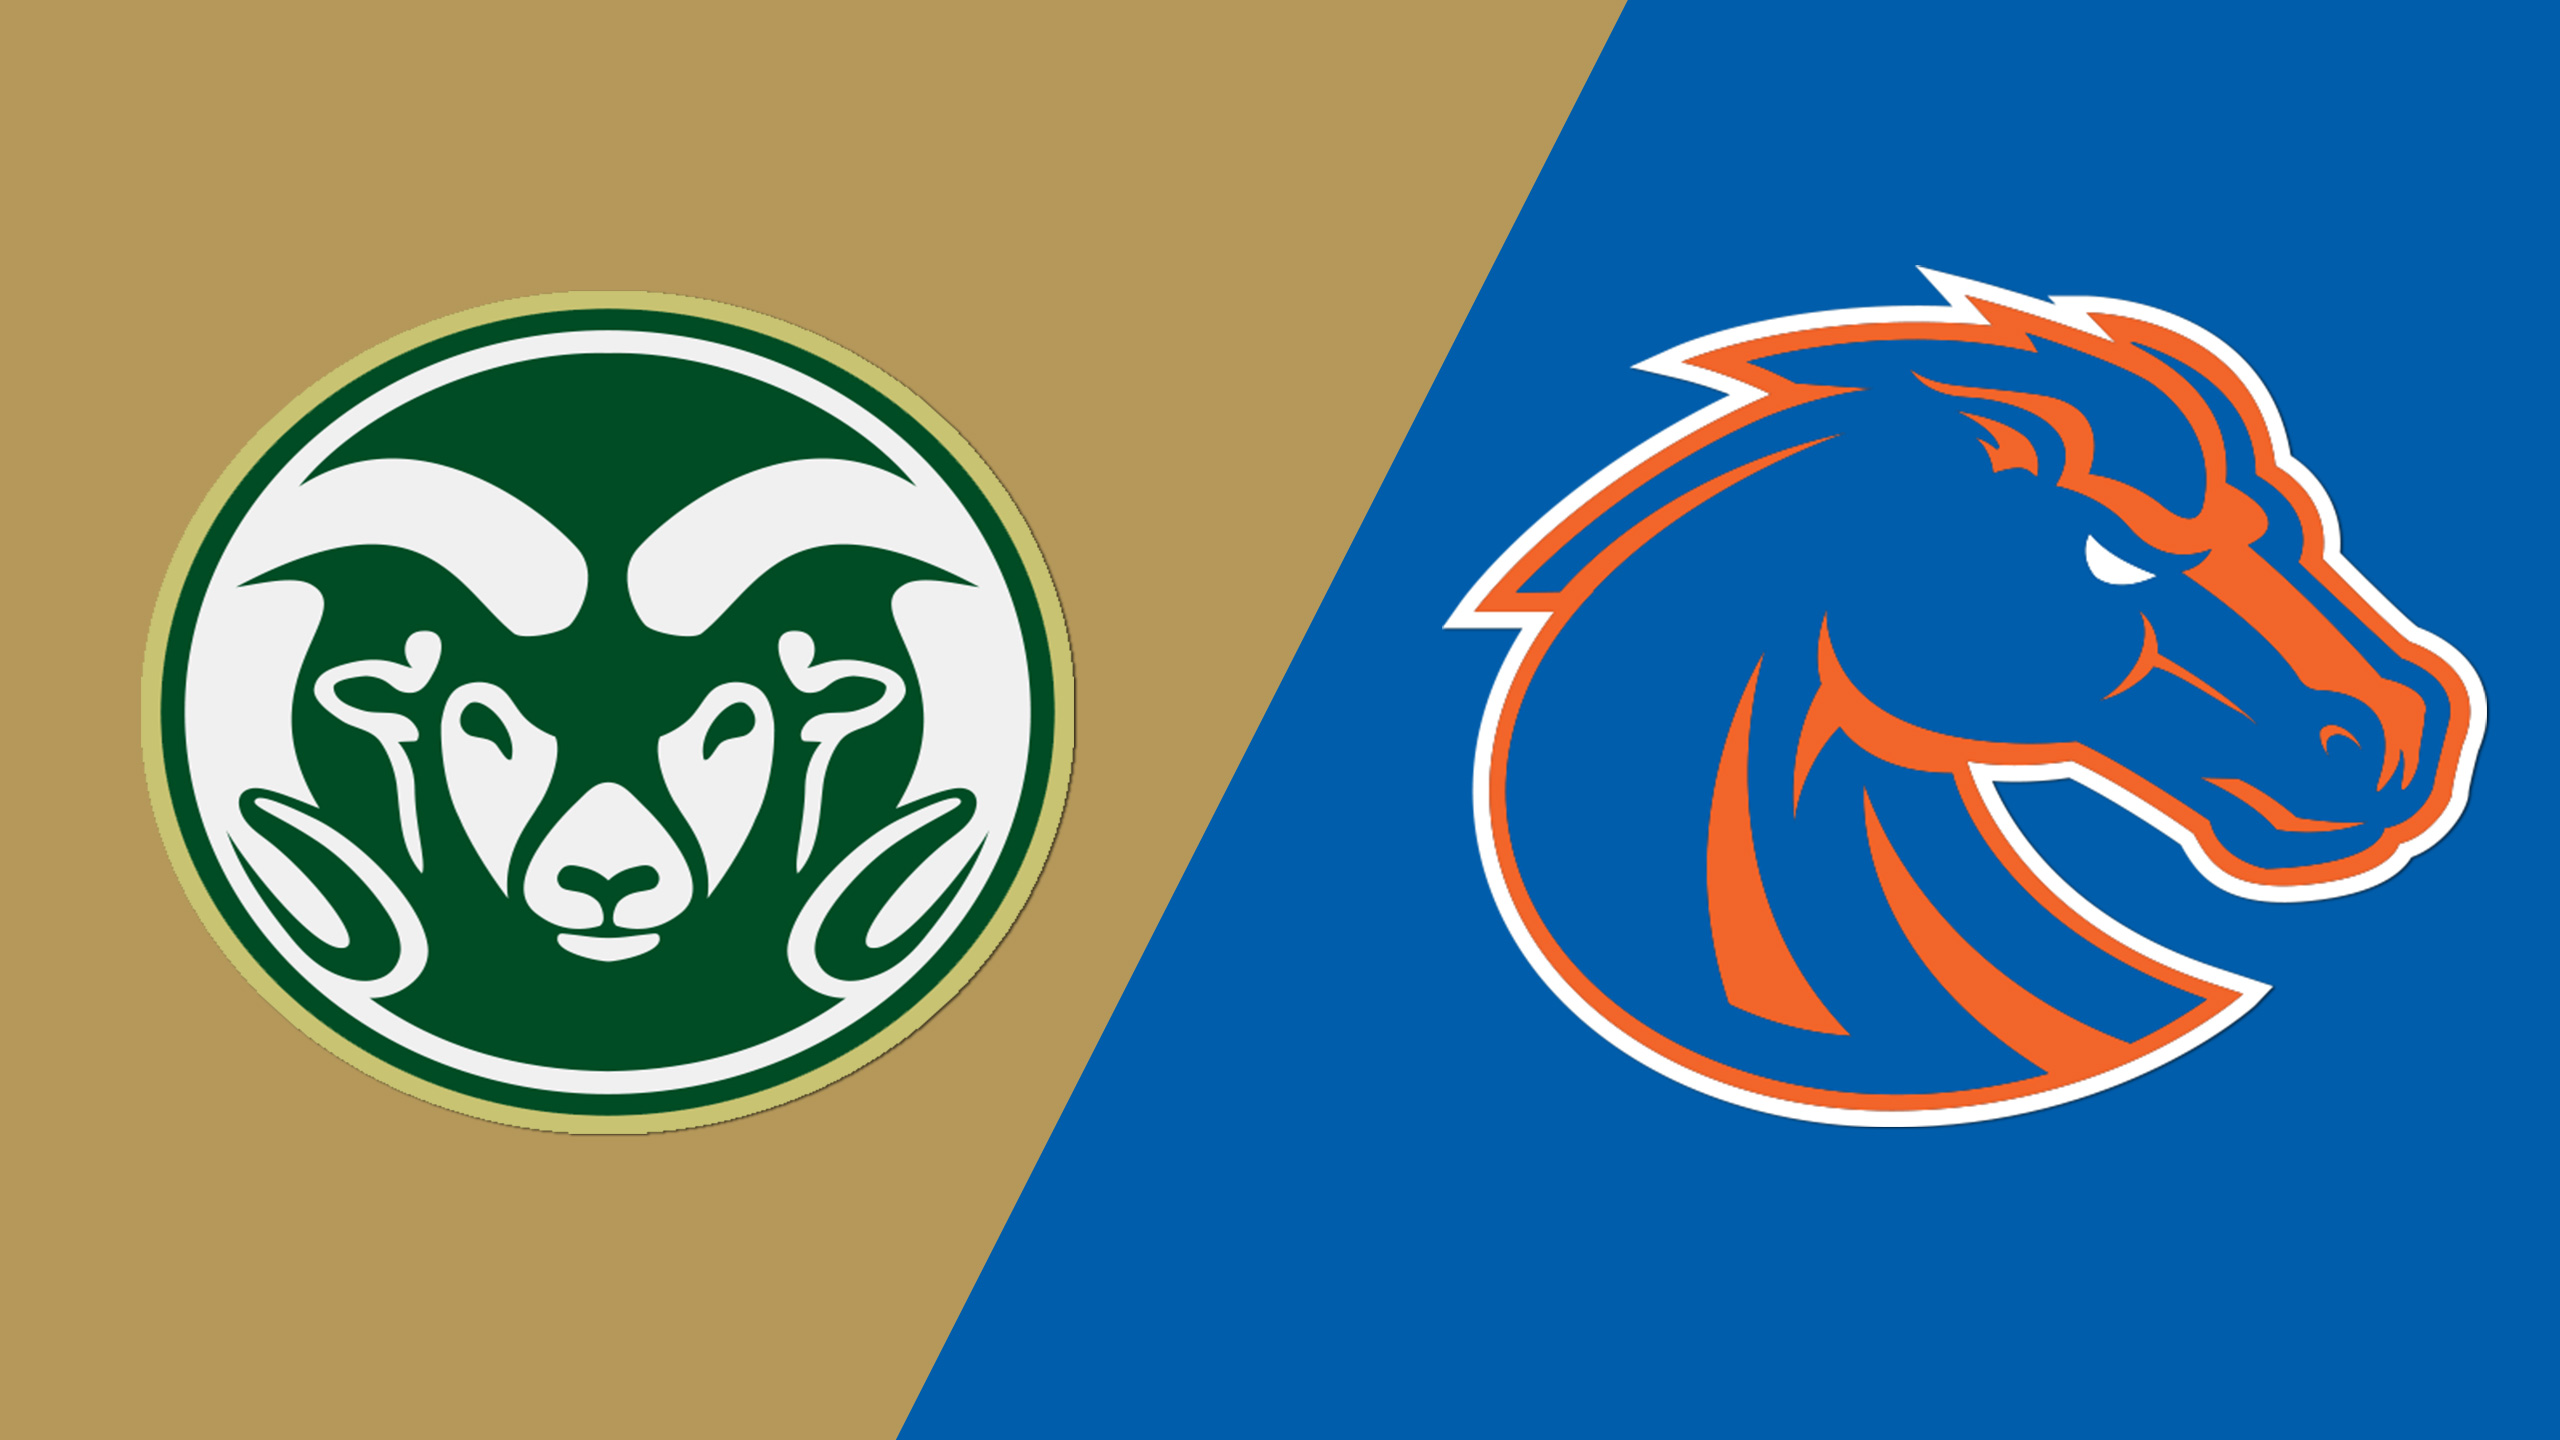 Colorado State vs. Boise State (Football) (re-air)